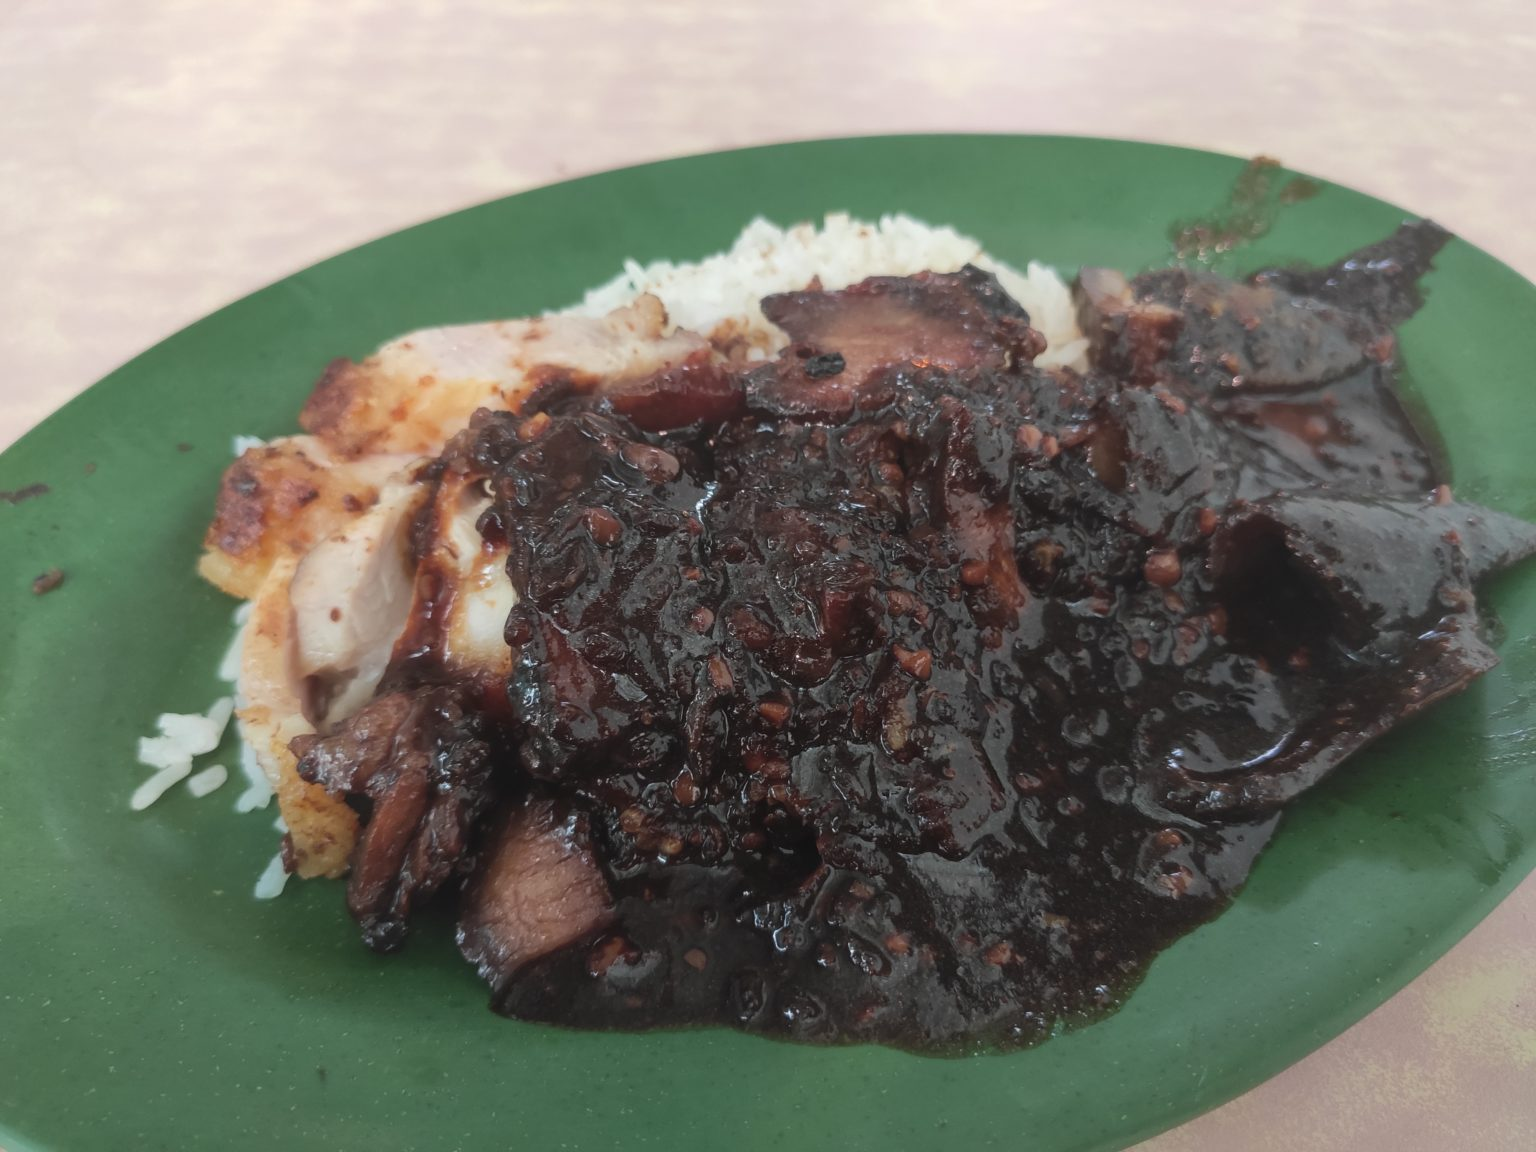 Review: Lau Phua Chay Authentic Roasted Delicacies (Singapore)